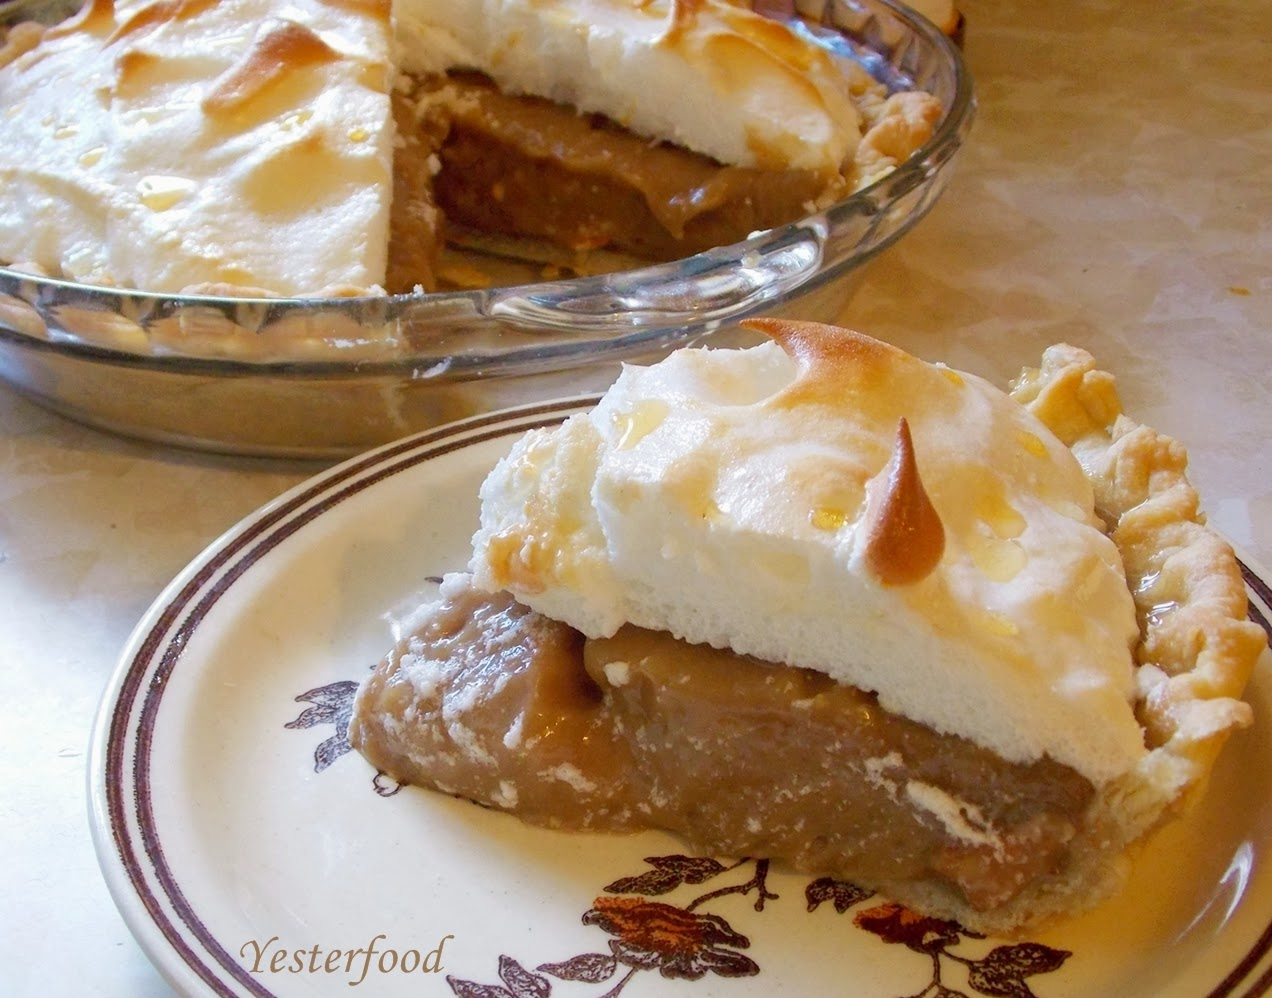 Yesterfood : Rosalynn Carter's Peanut Butter Pie